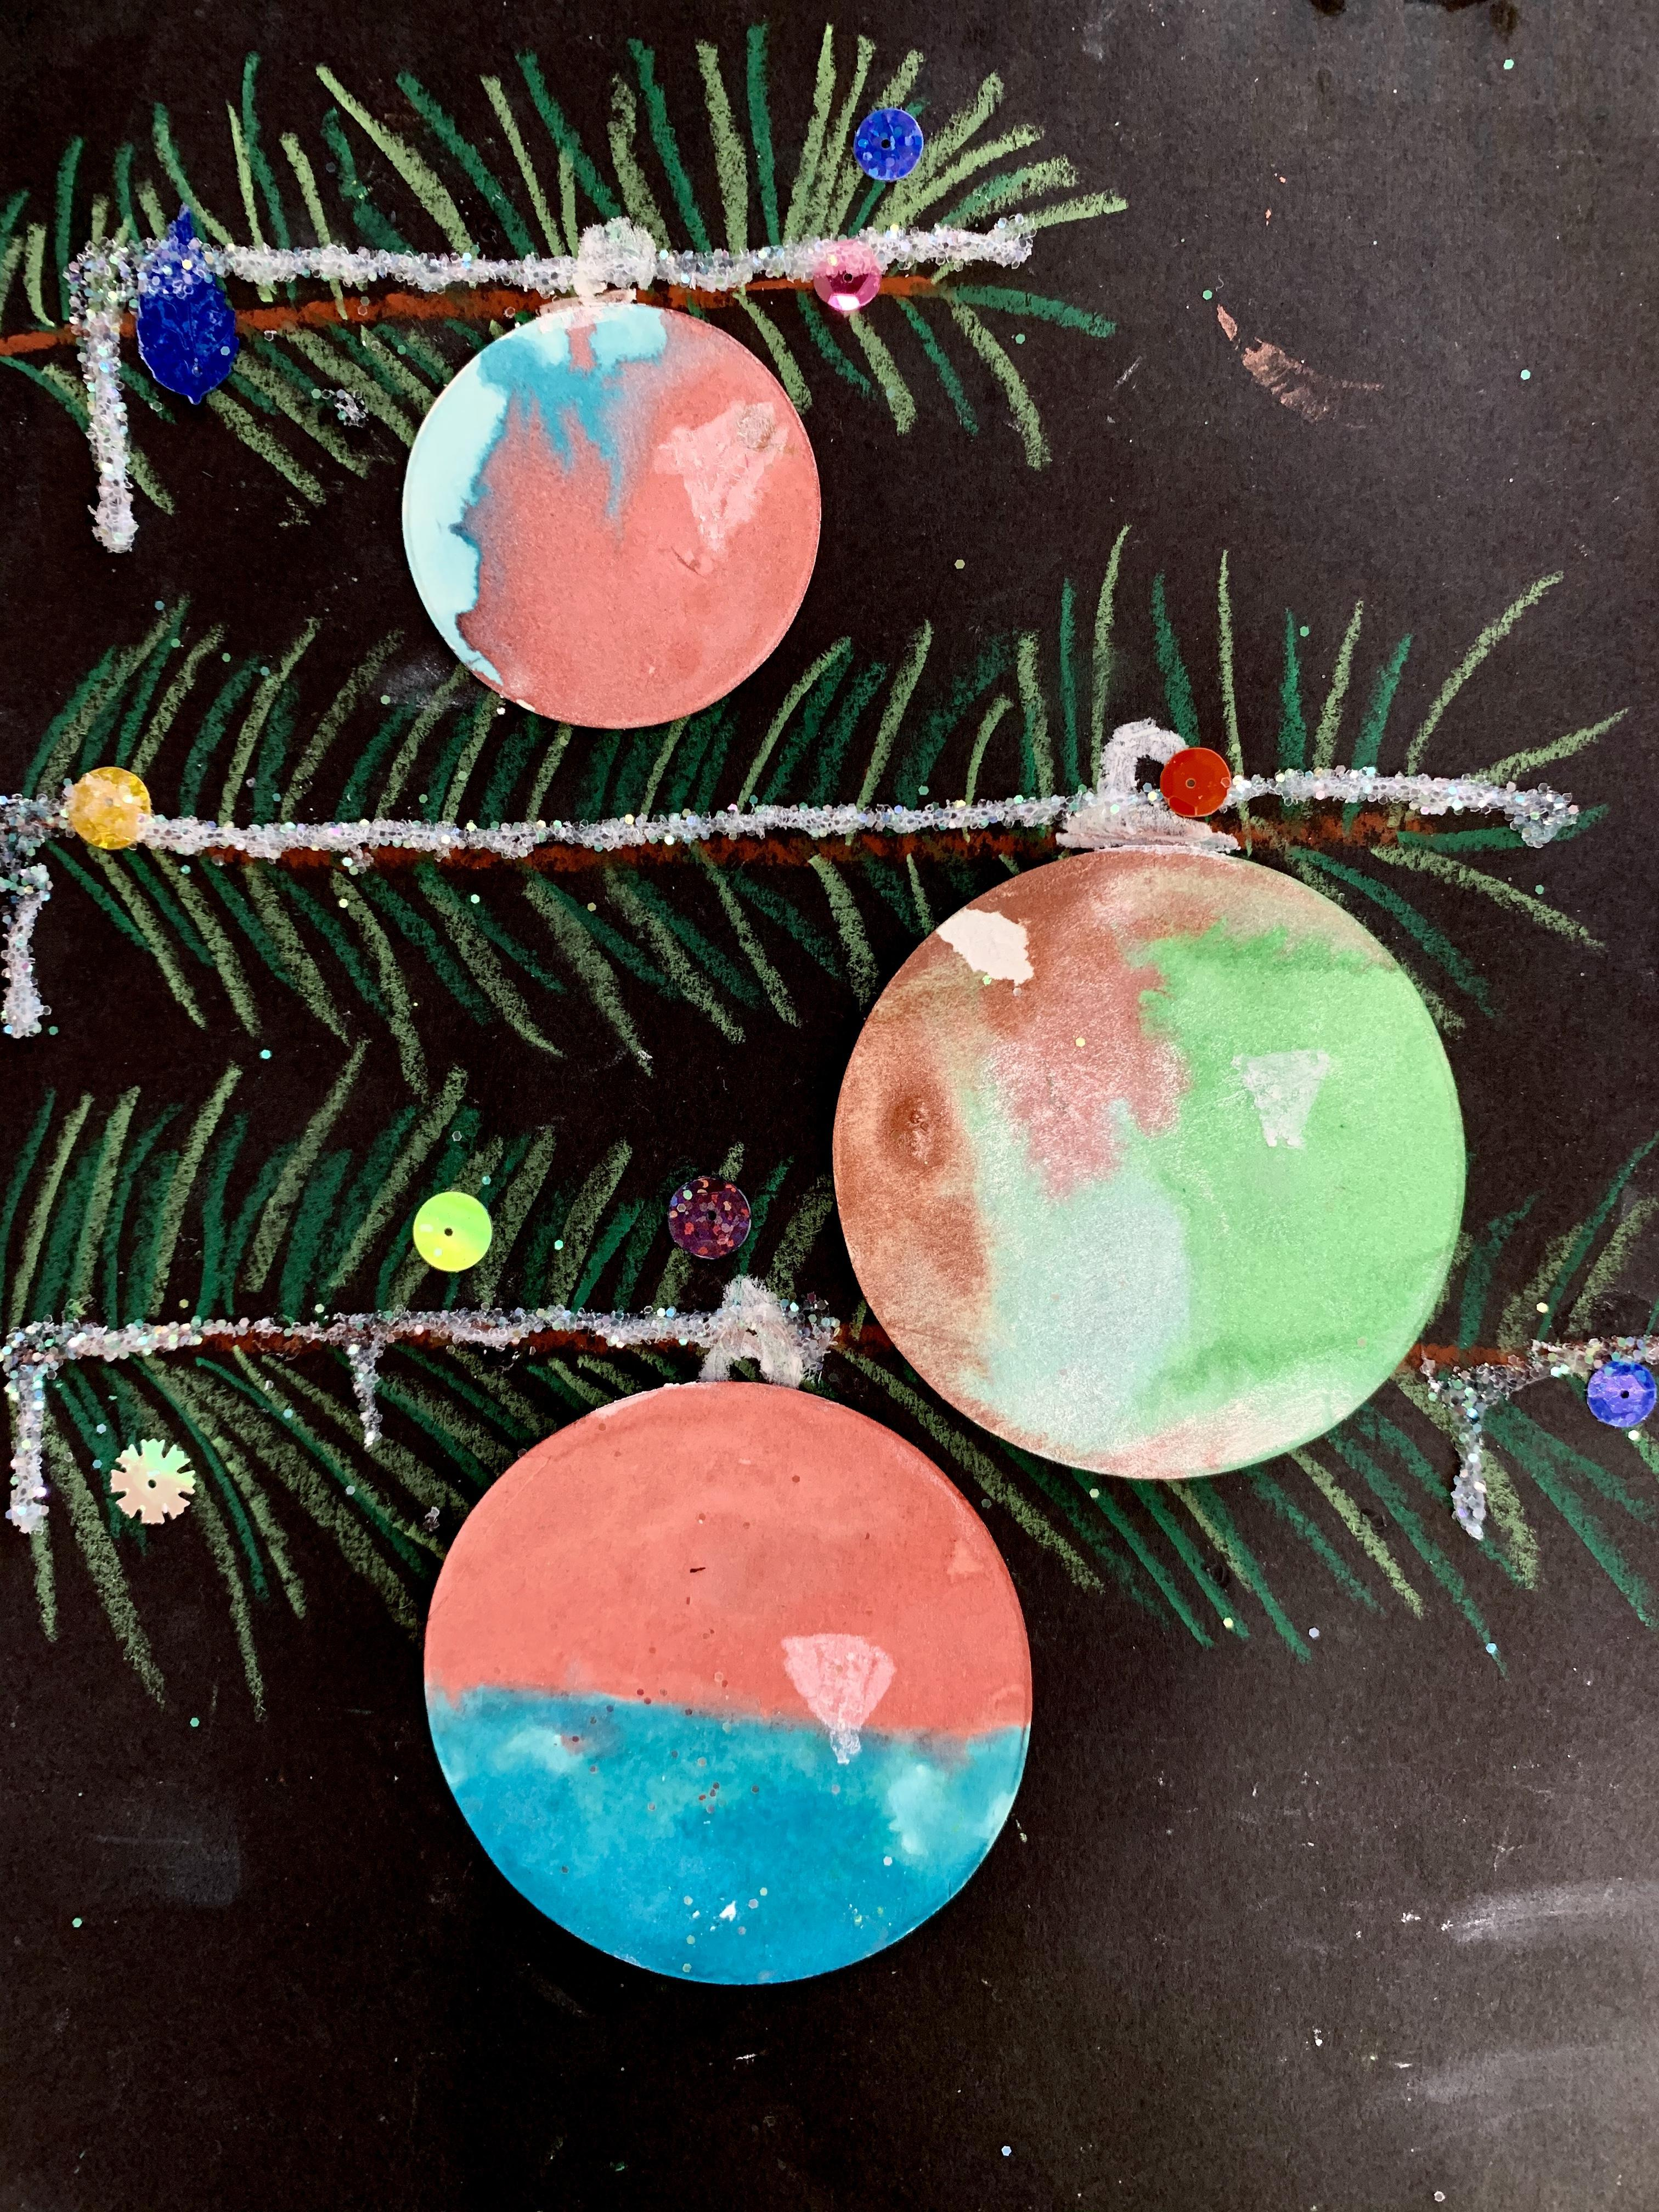 Pine Tree with Ornament 10